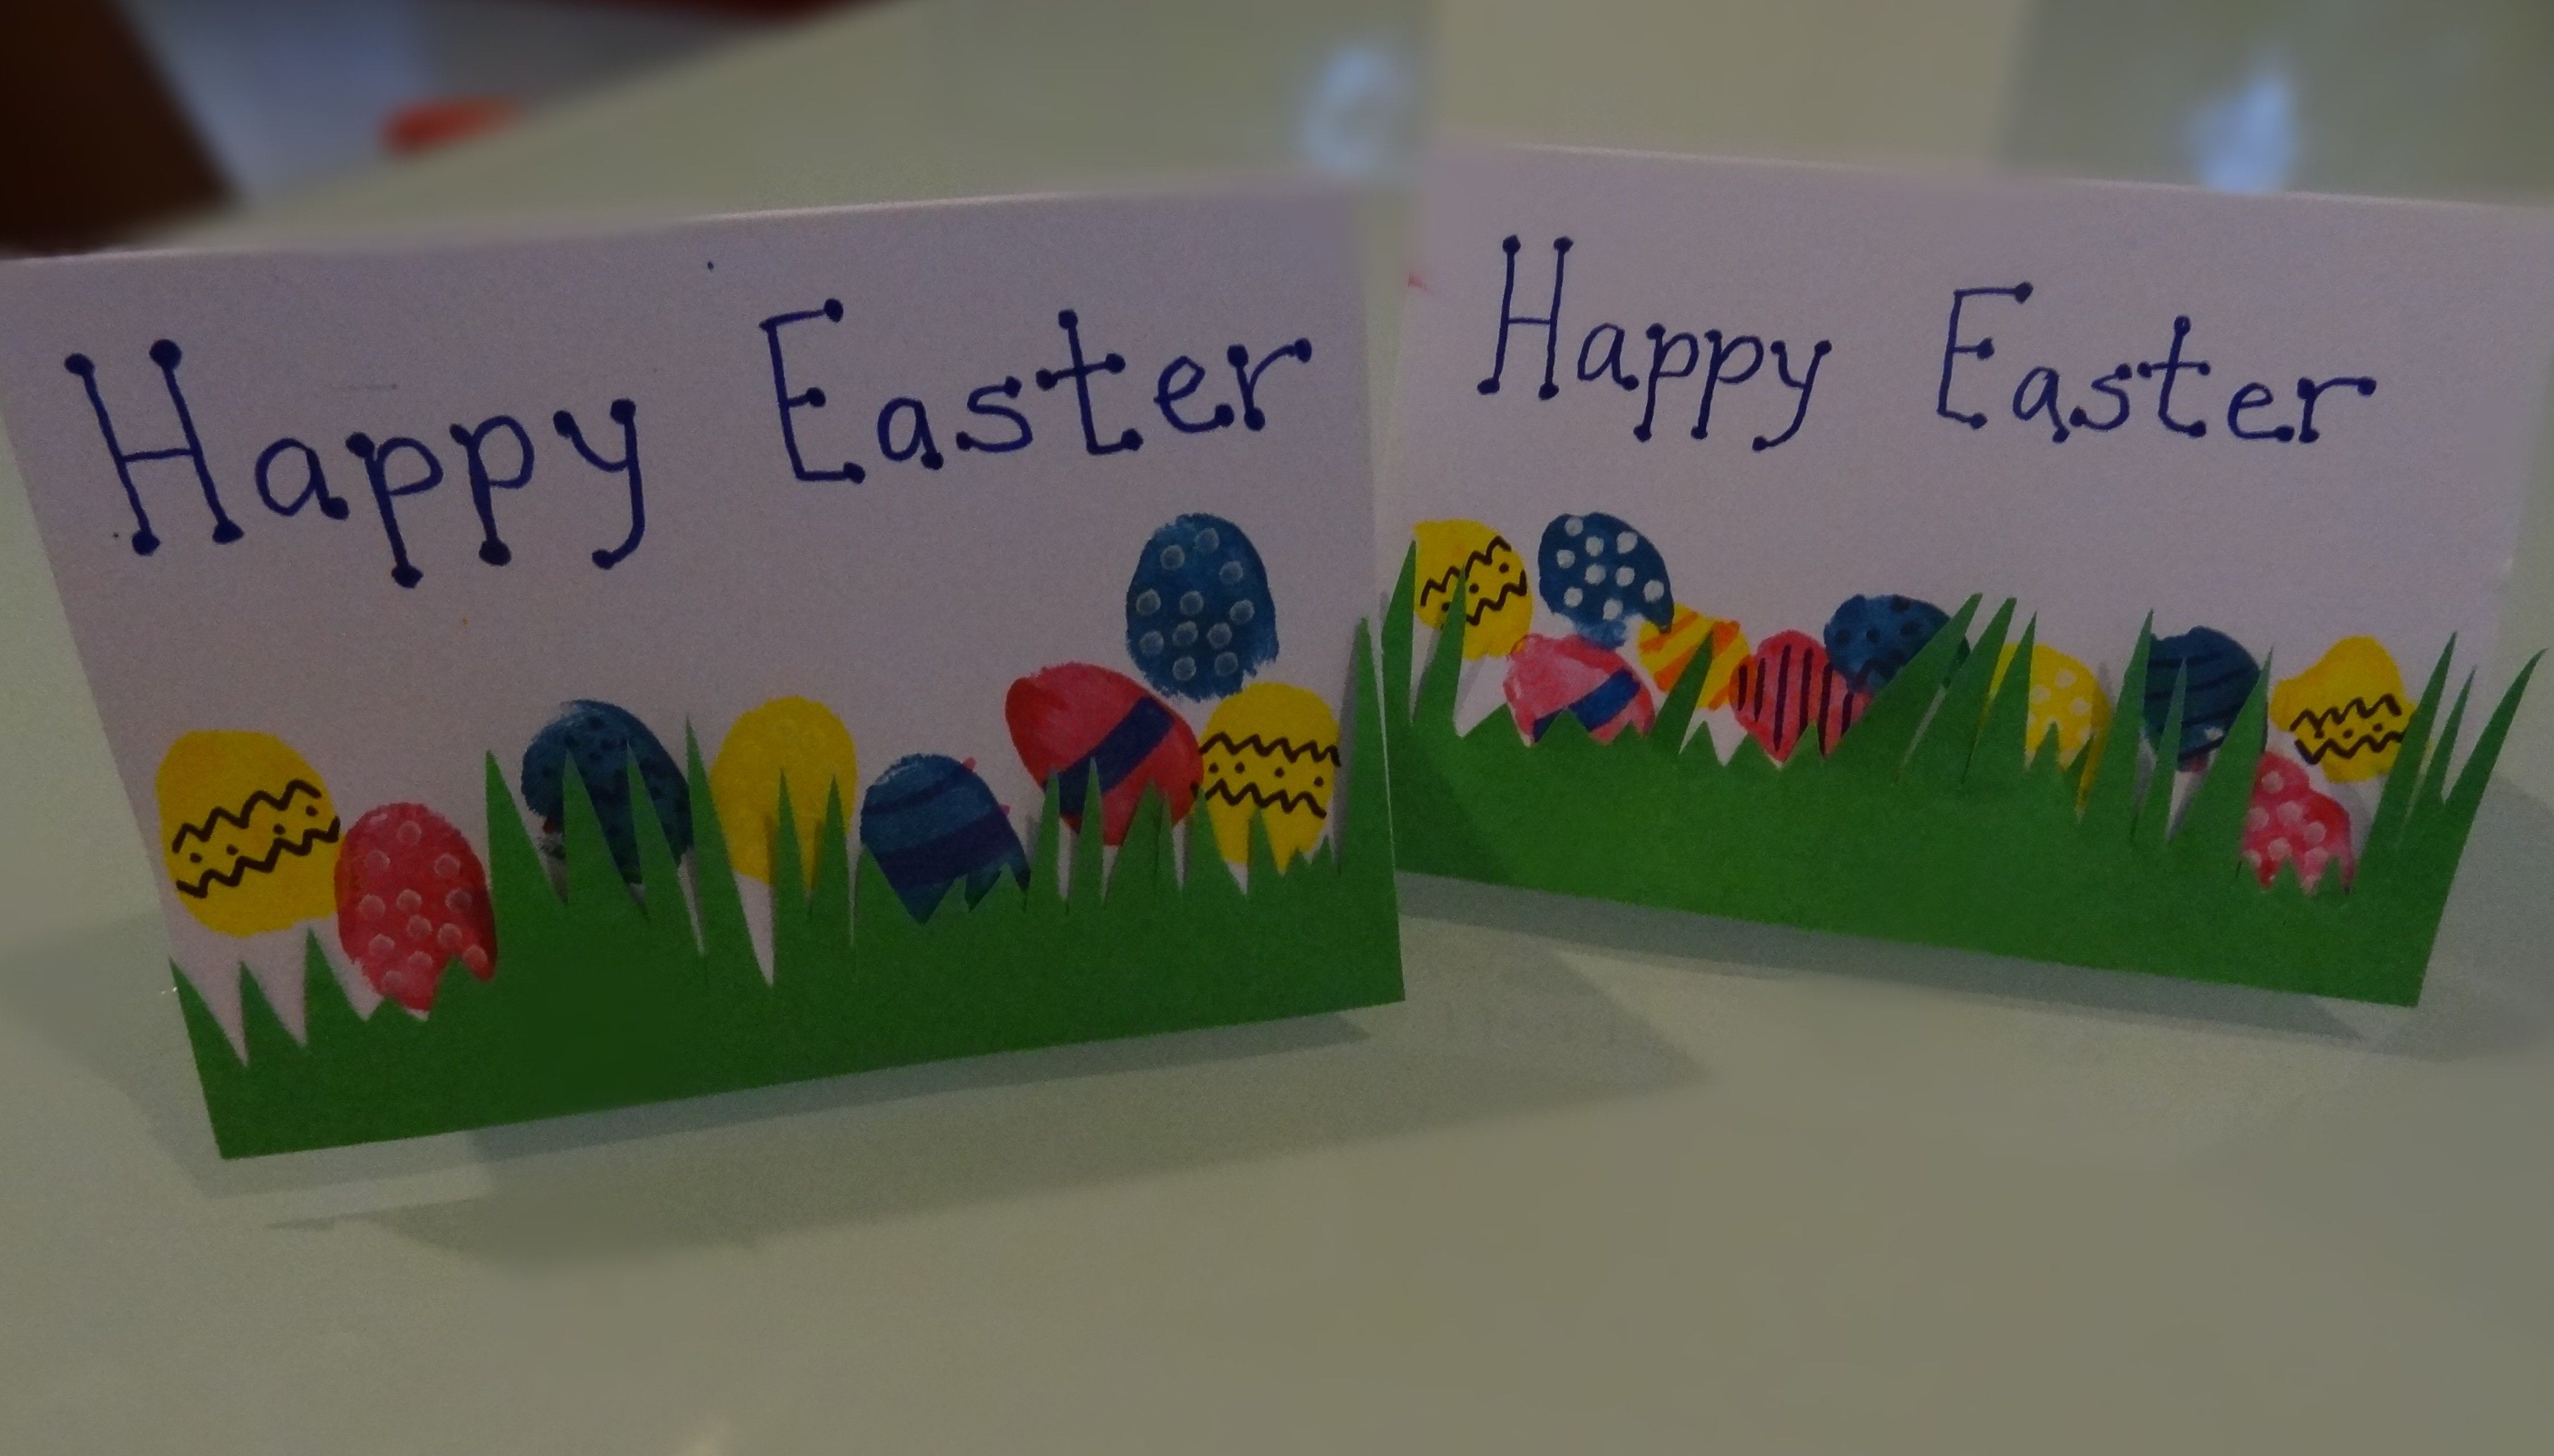 Fingerprint easter egg gift cards there was a crooked house art there was a crooked house easter cardeaster gifteaster negle Gallery